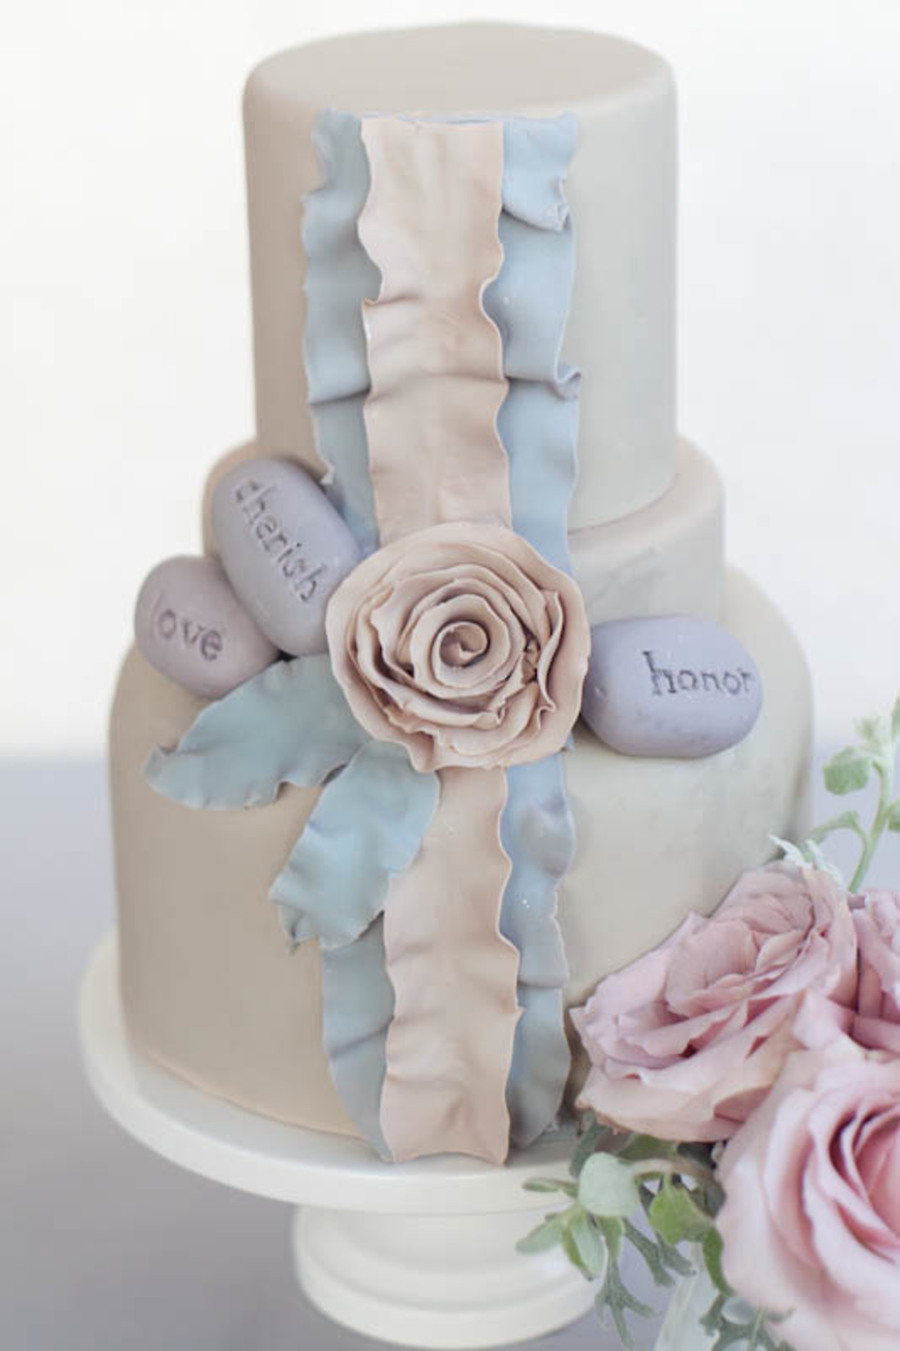 Shades Of Gray Ruffle Cake With Edible Stones  on Cake Central